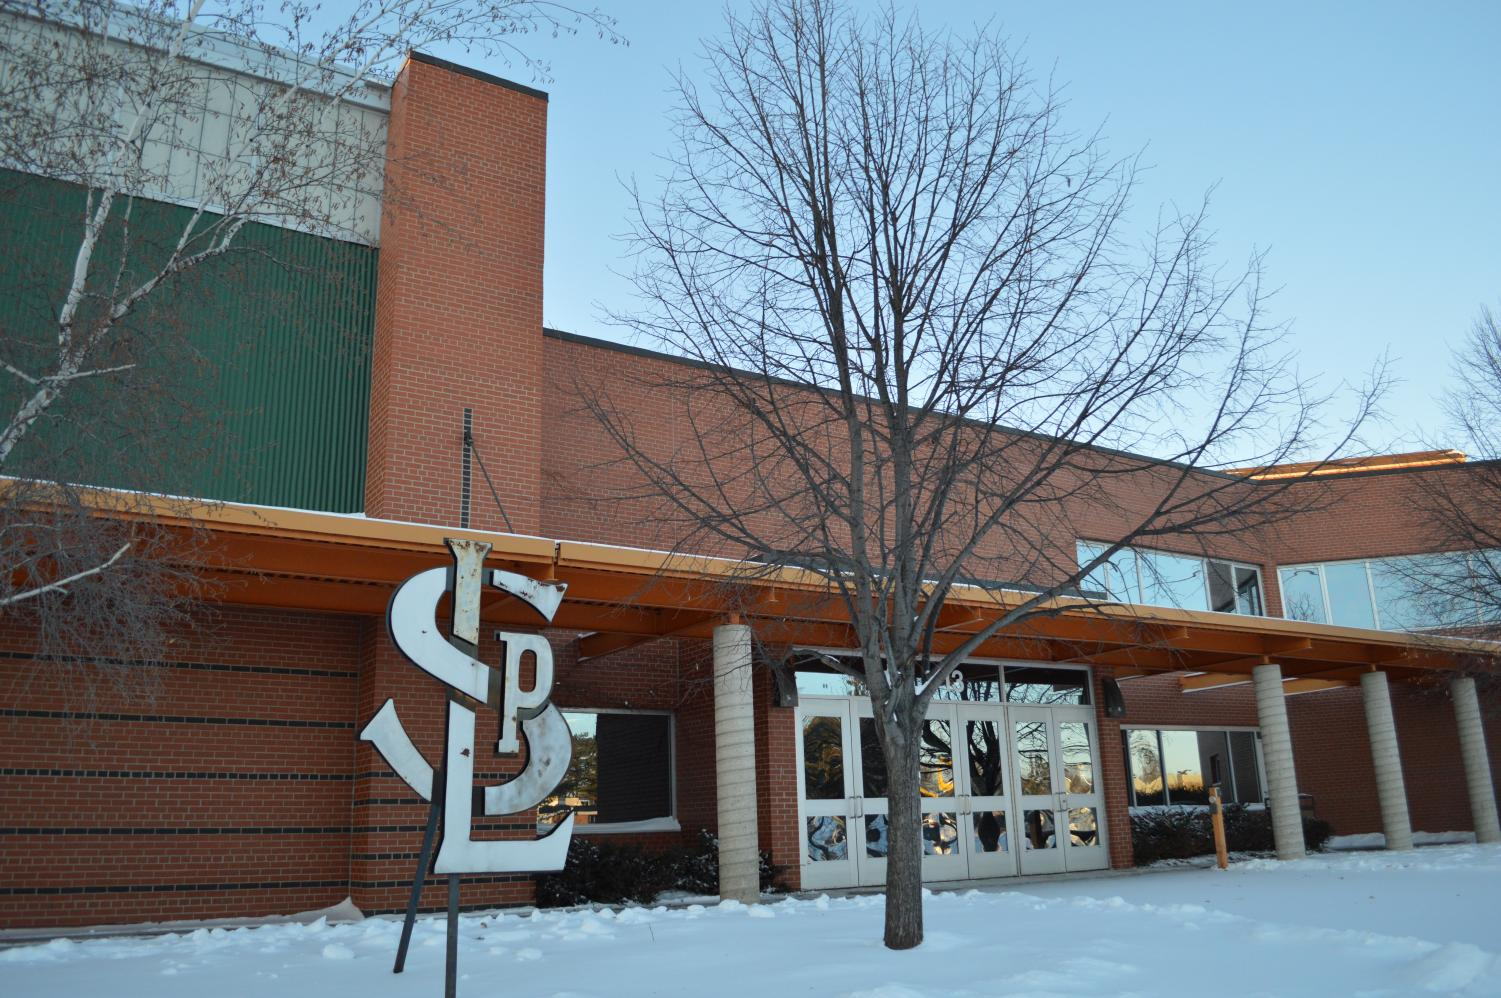 St. Louis Park Public Schools will have a two-hour late start Jan. 28 due to snow and cold wind. Pictured is door 12, where athletics will continue after school as usual.